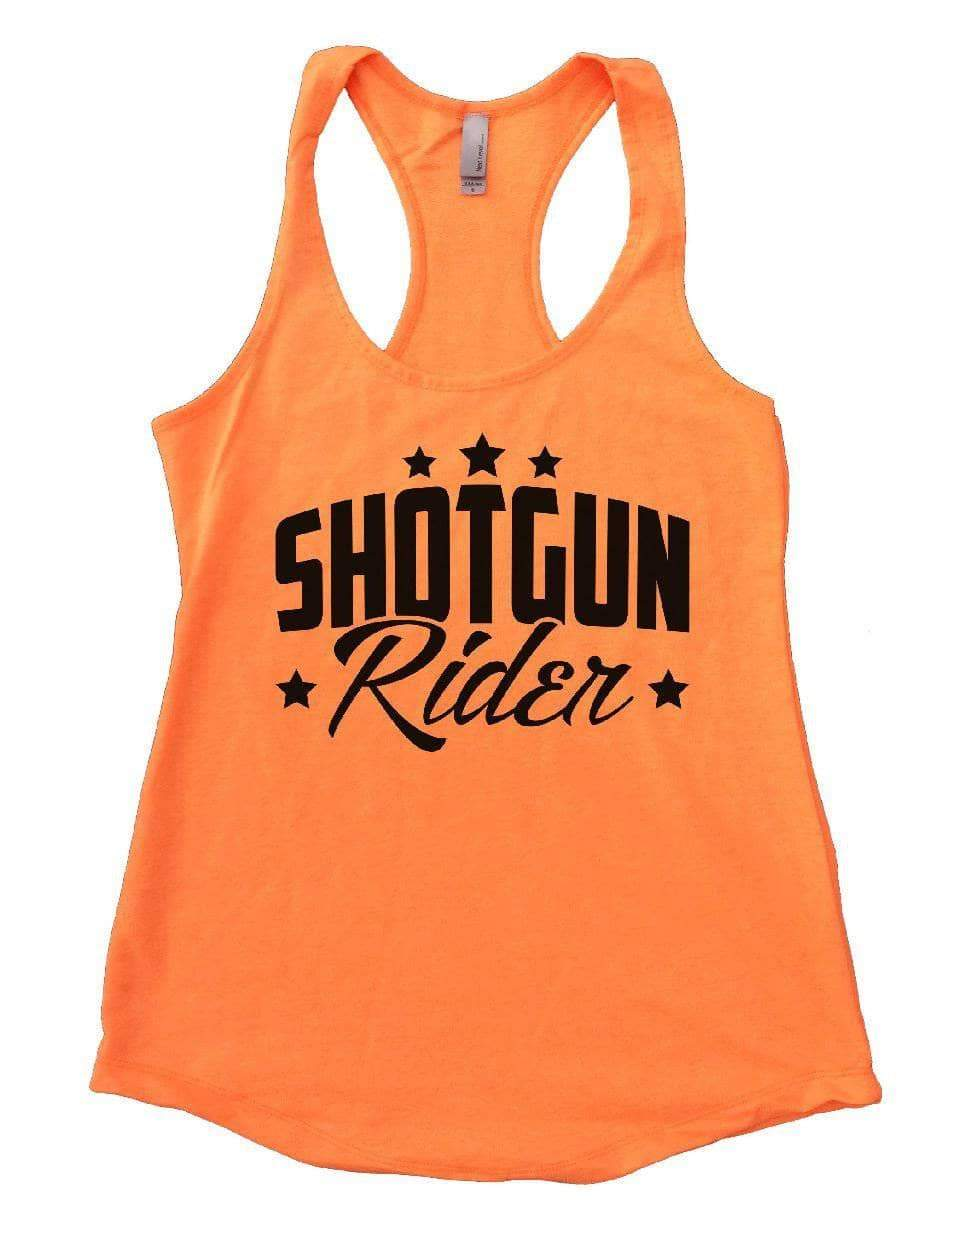 SHOTGUN Rider Womens Workout Tank Top Small Womens Tank Tops Neon Orange